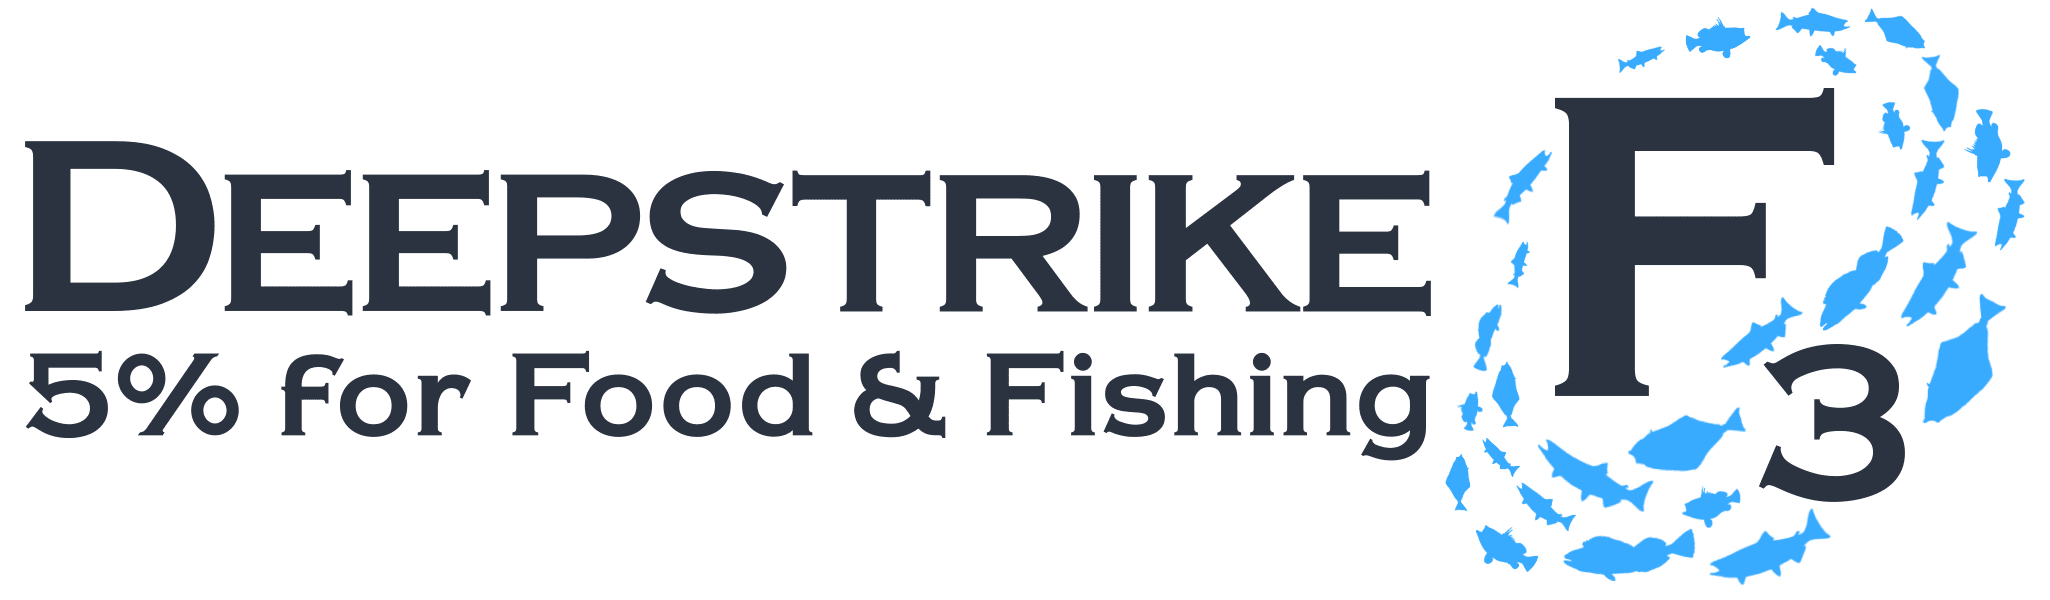 Deepstrike F3 logo - 5% for Food and Fishing